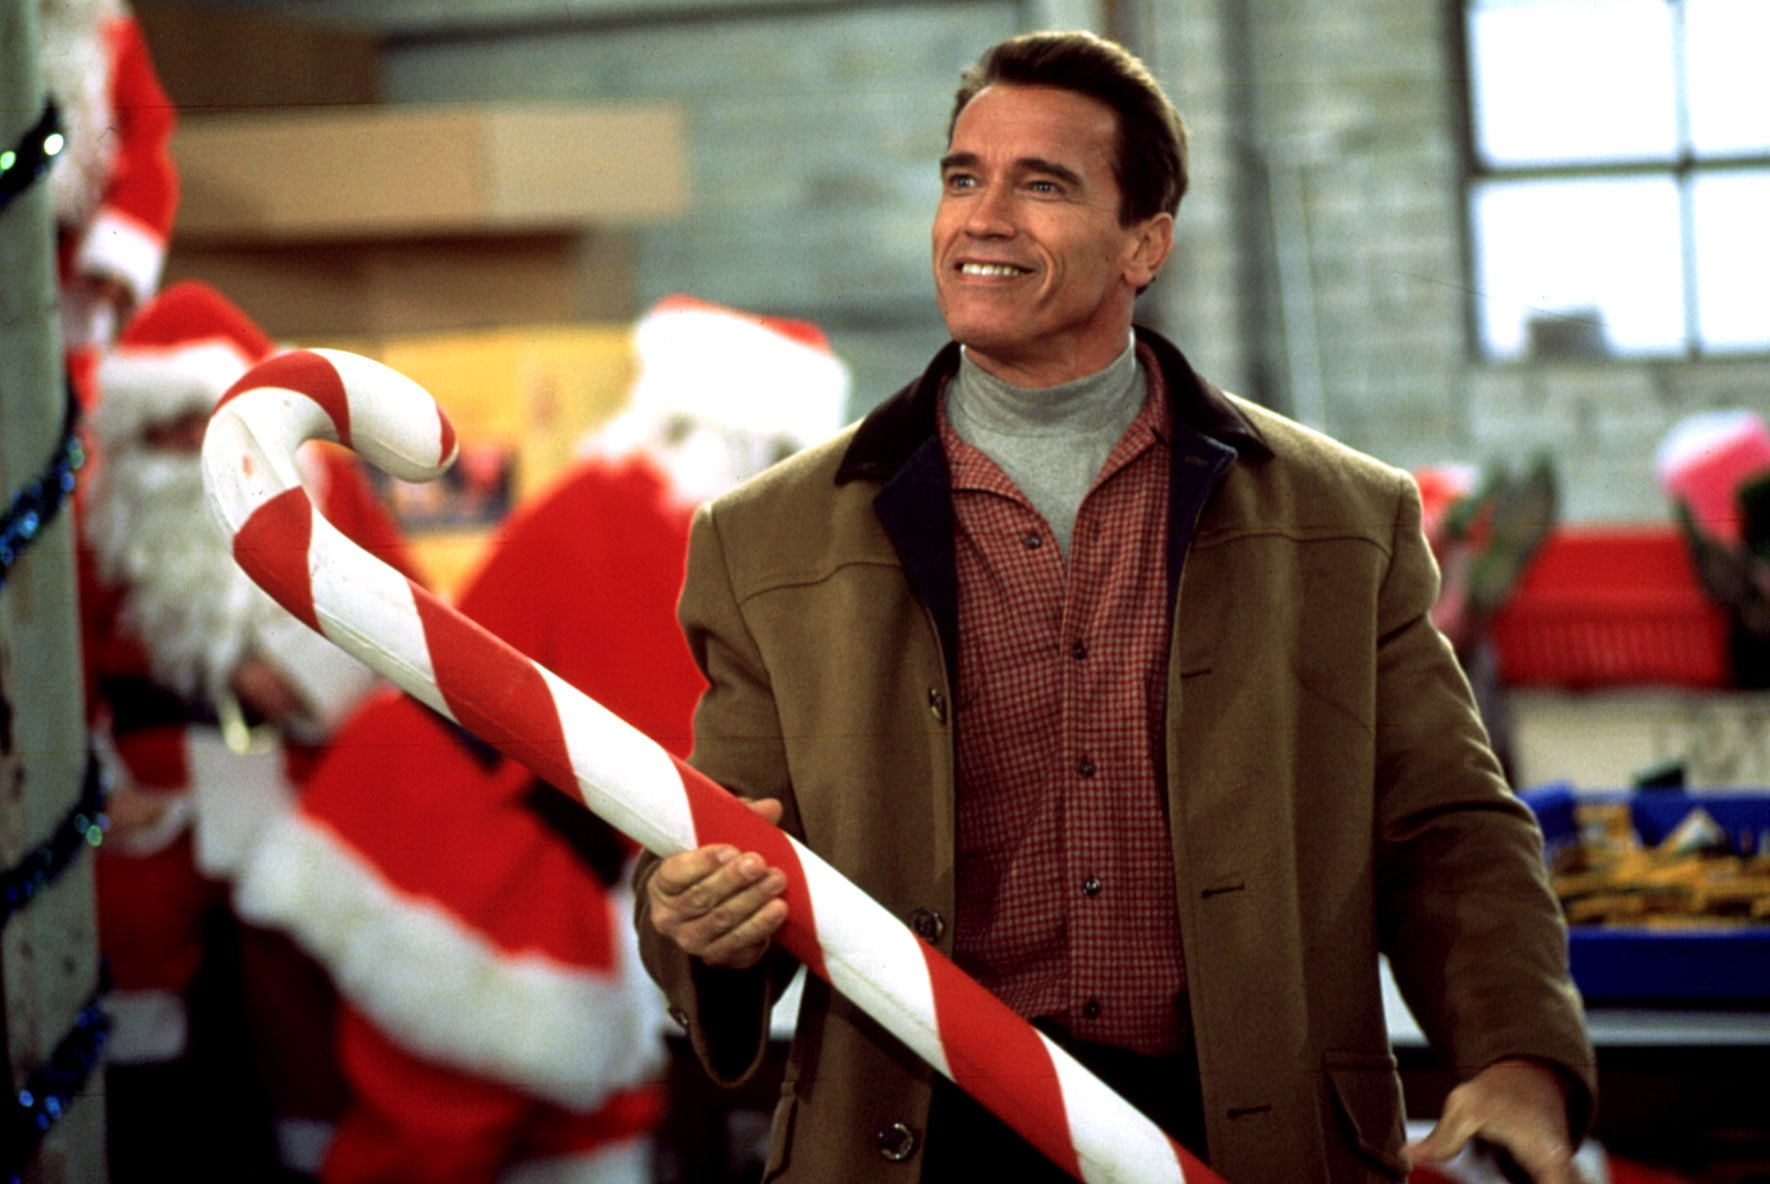 JINGLE ALL THE WAY, Arnold Schwarzenegger, 1996, TM & Copyright (c) 20th Century Fox Film Corp. All rights reserved.